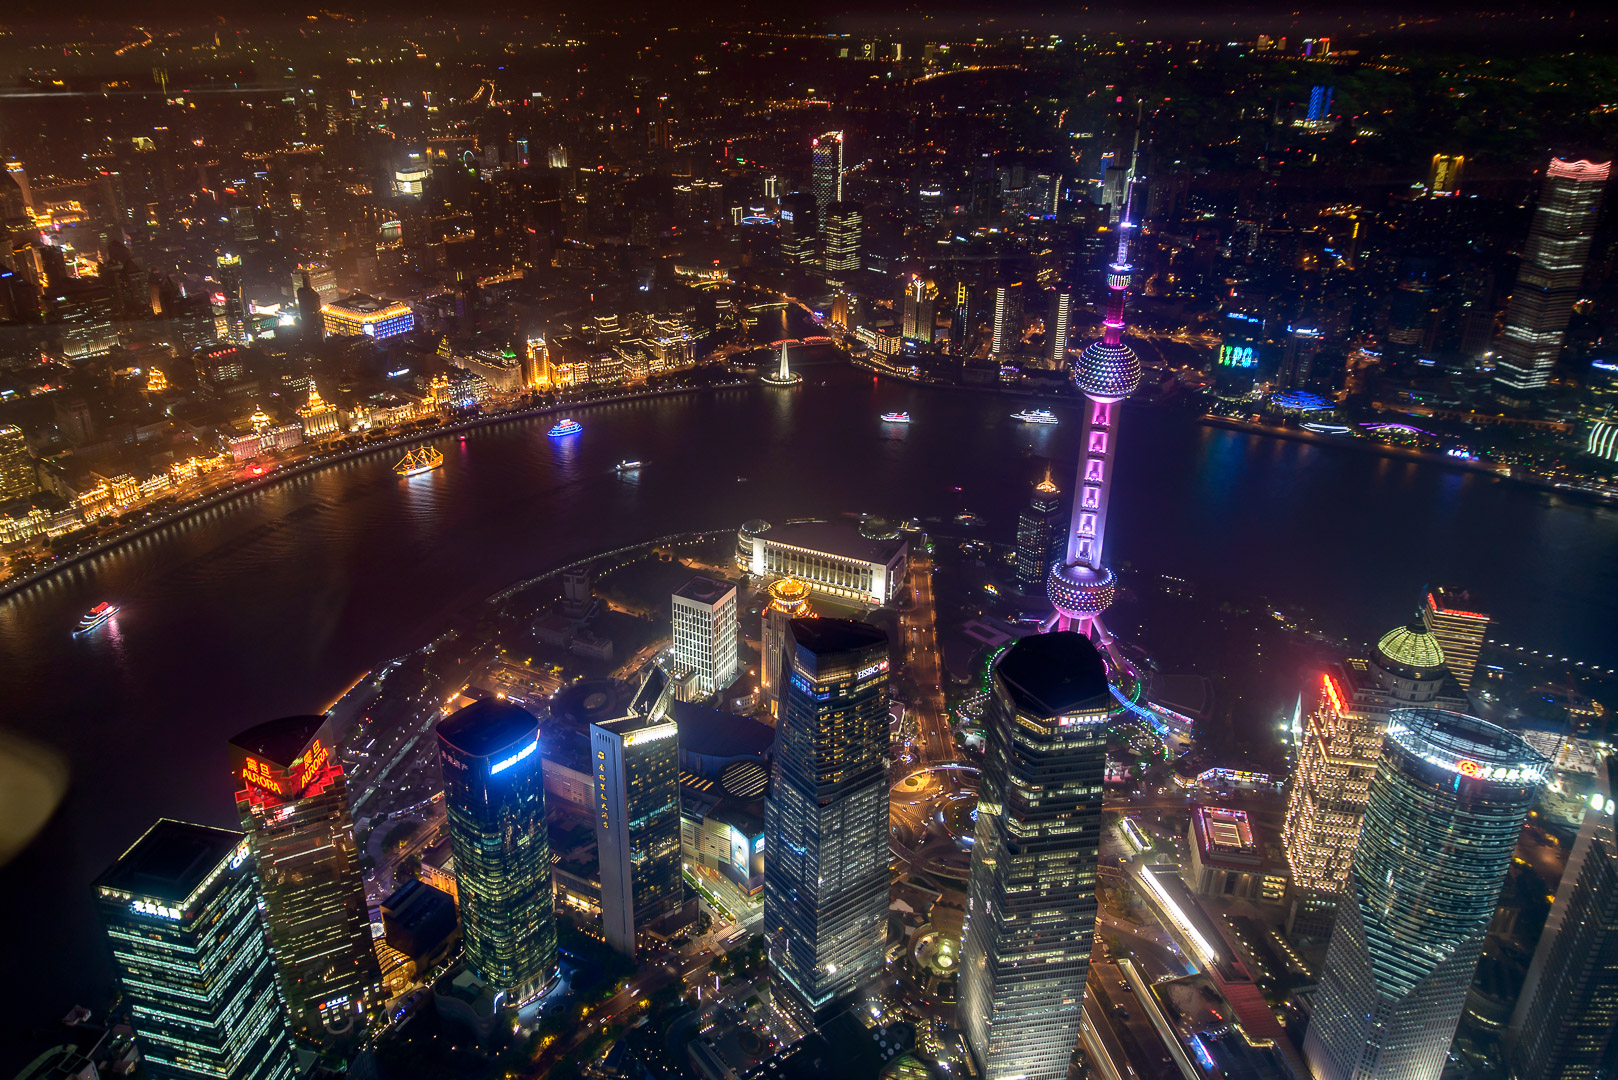 That's the view you can get when you visit the visitor platform of the Shanghai tower at 546m